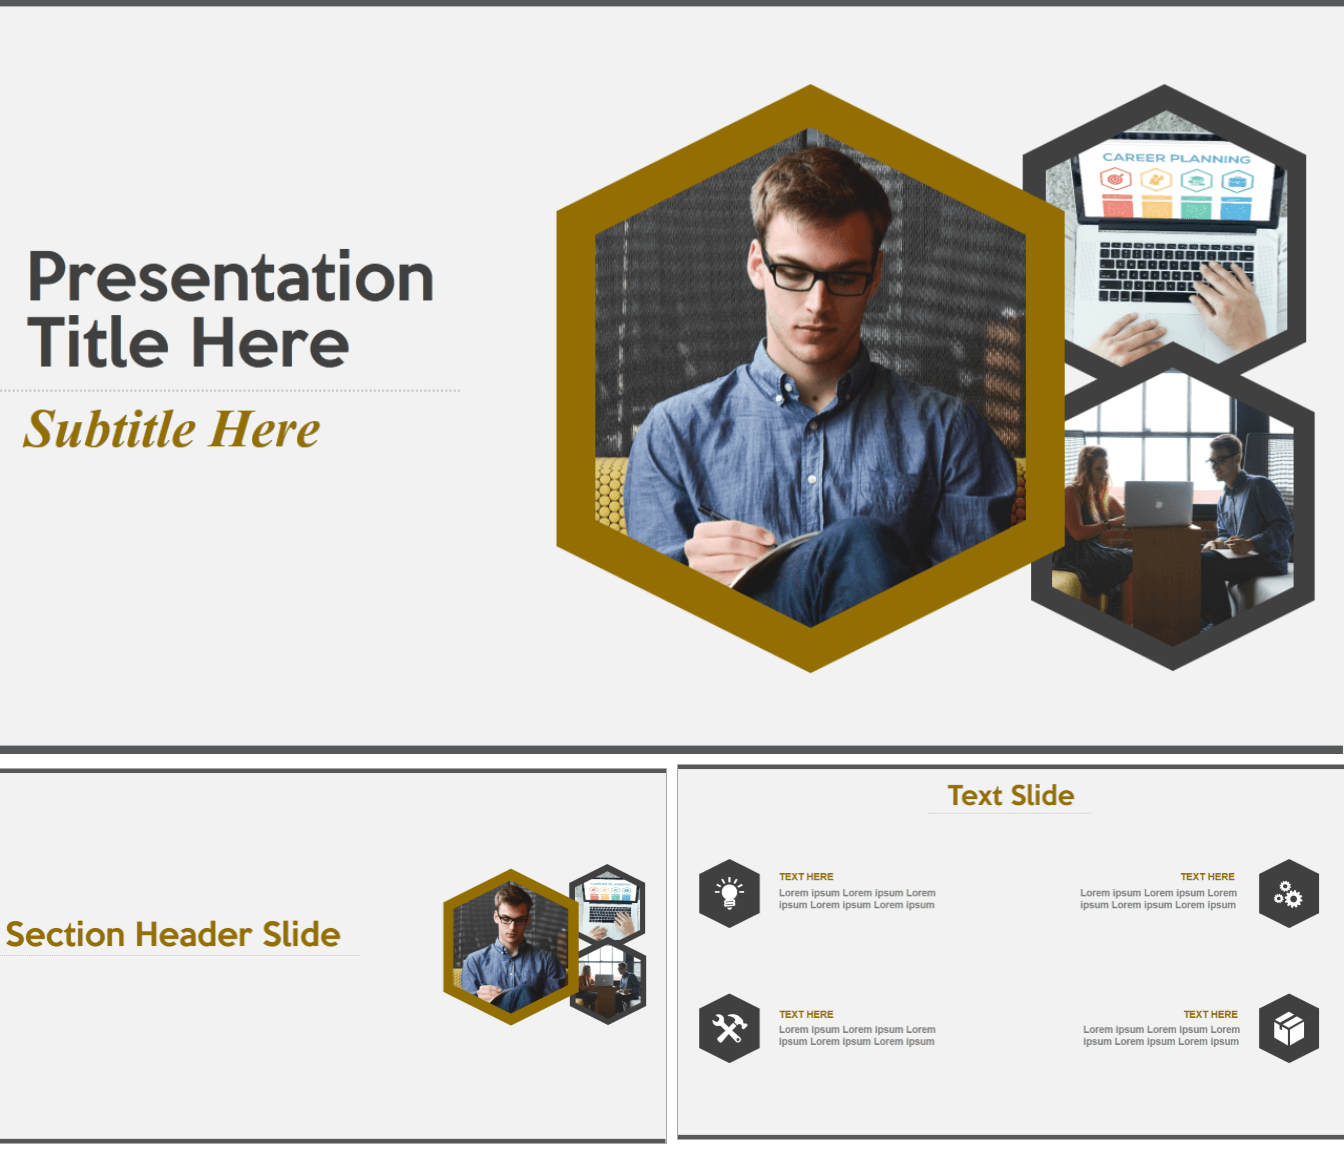 7 amazing powerpoint template designs for your company or personal the template allows allow you to use multiple images in the title slide without making it look messy this is the ppt template you can use for your company toneelgroepblik Images